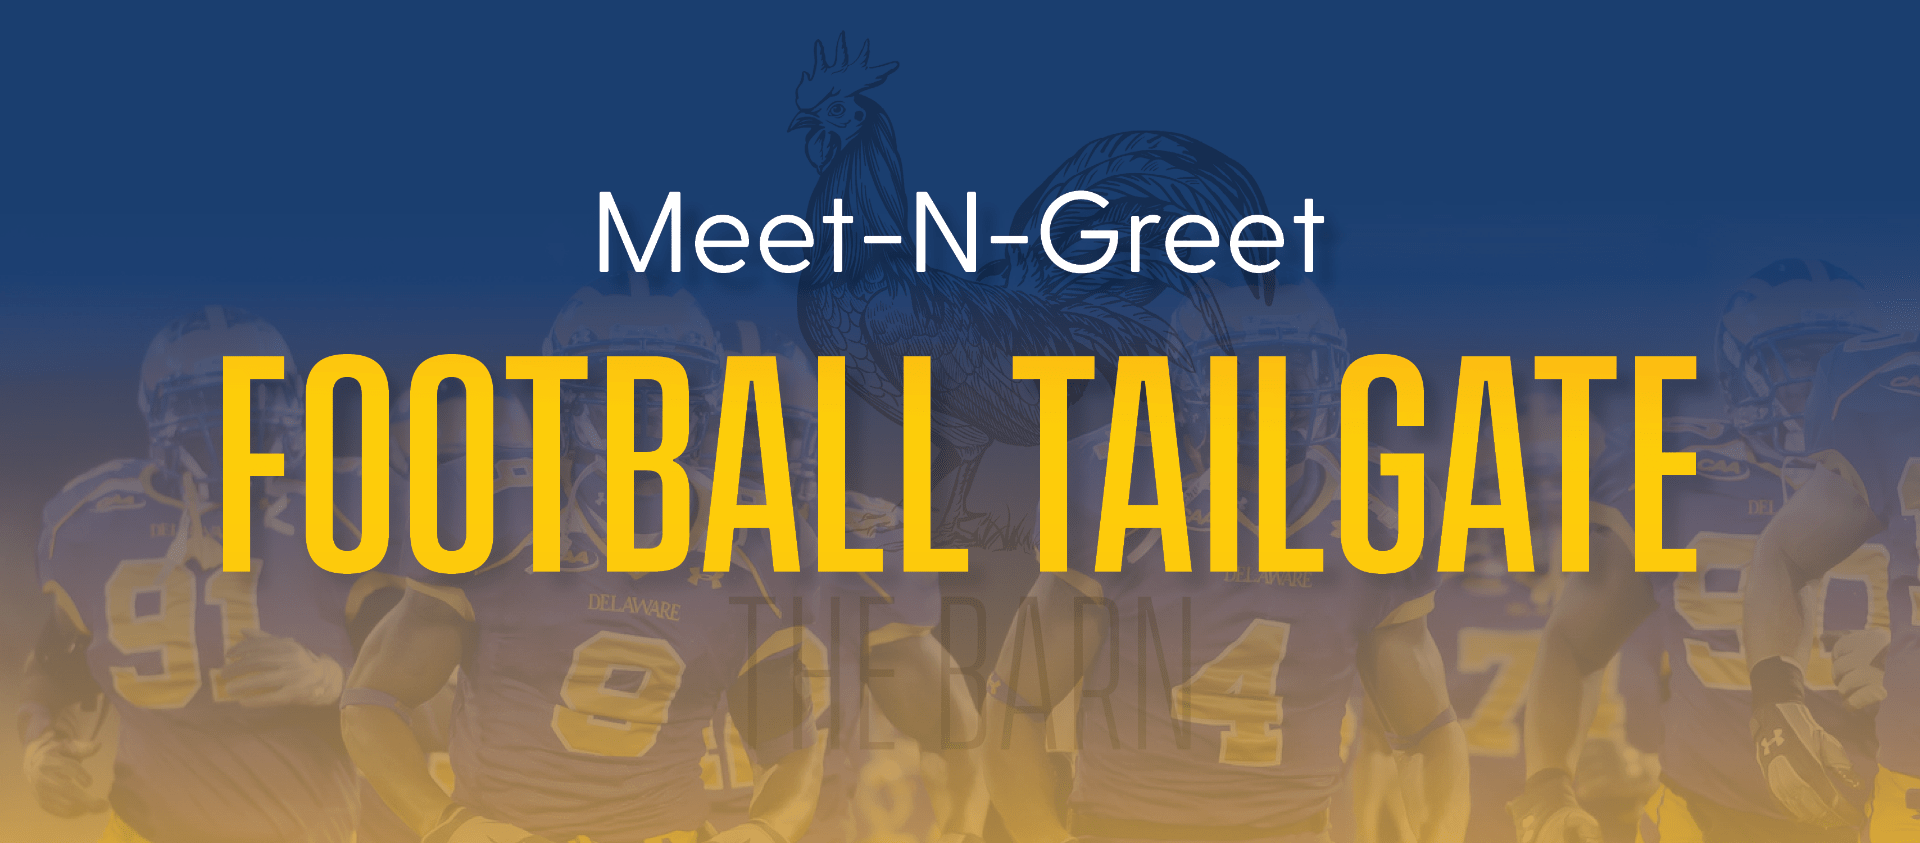 UD Fightin' Blue Hens football taking the field with text overlay: Meet-N-Greet Football Tailgate.